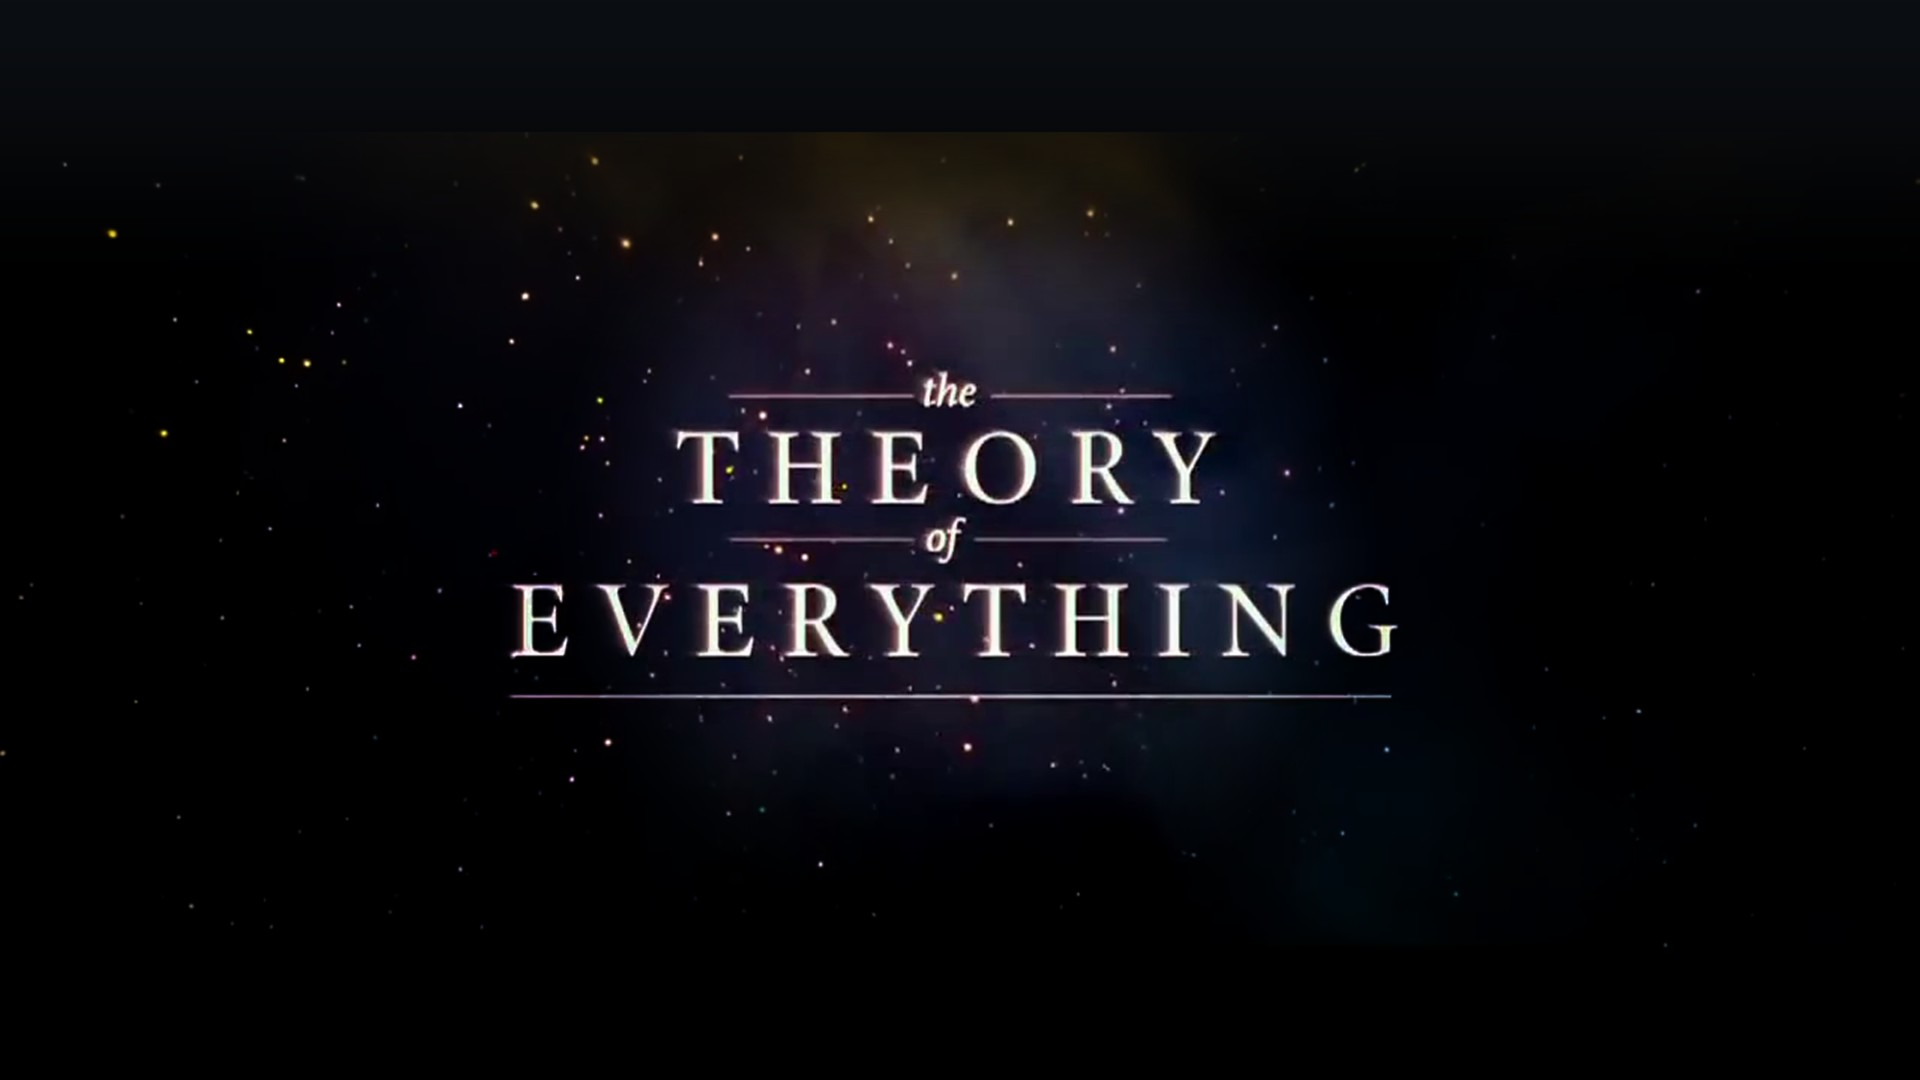 Top Wallpaper Movie The Theory Everything - The-Theory-Of-Everything-Movie-Wallpaper6  Image_633583.jpg